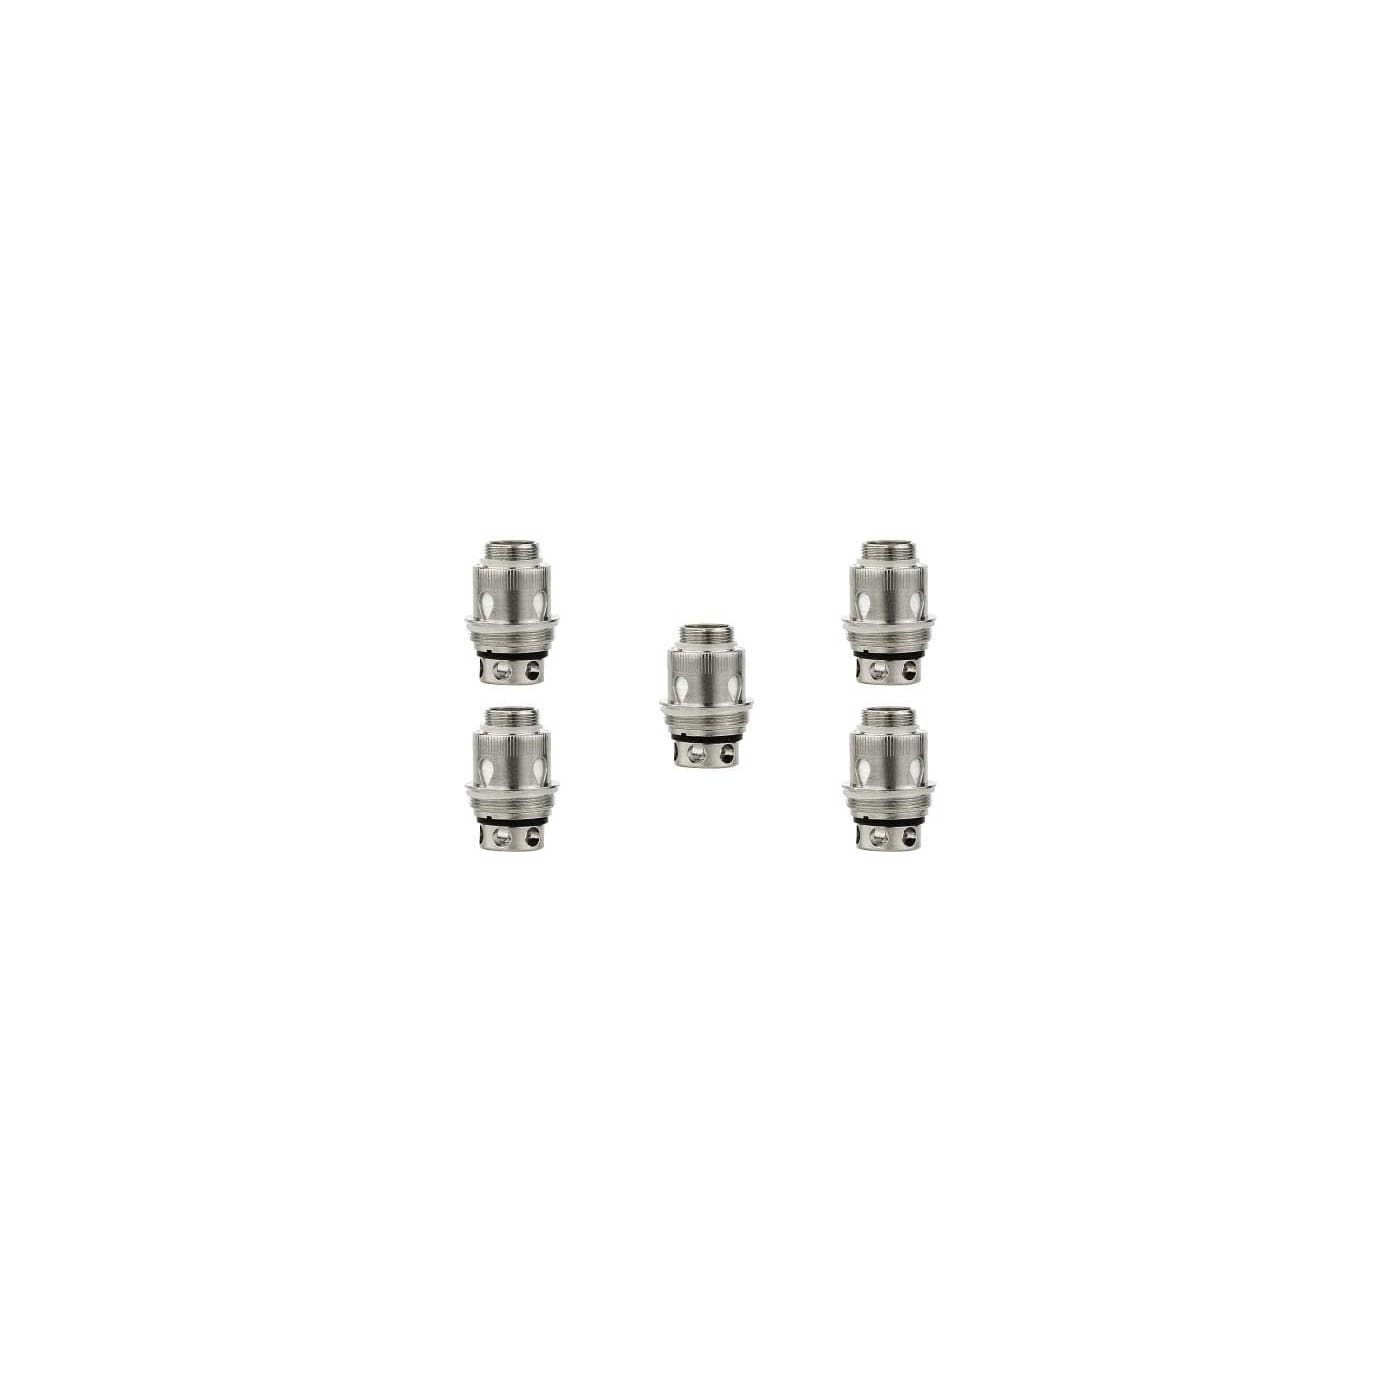 Sigelei MS-M Replacement Coil - 5 pack - 0.20 ohm